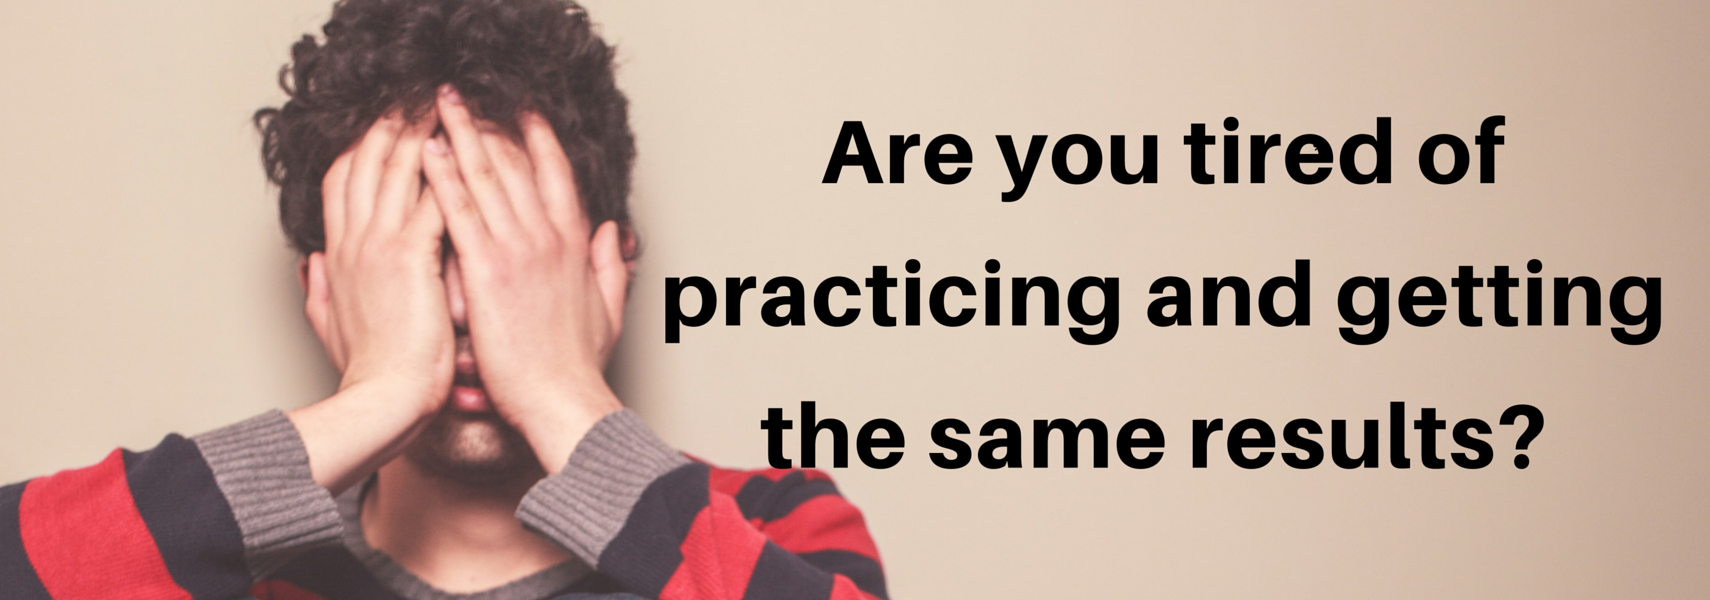 Are you tired of practicing and getting the same results?